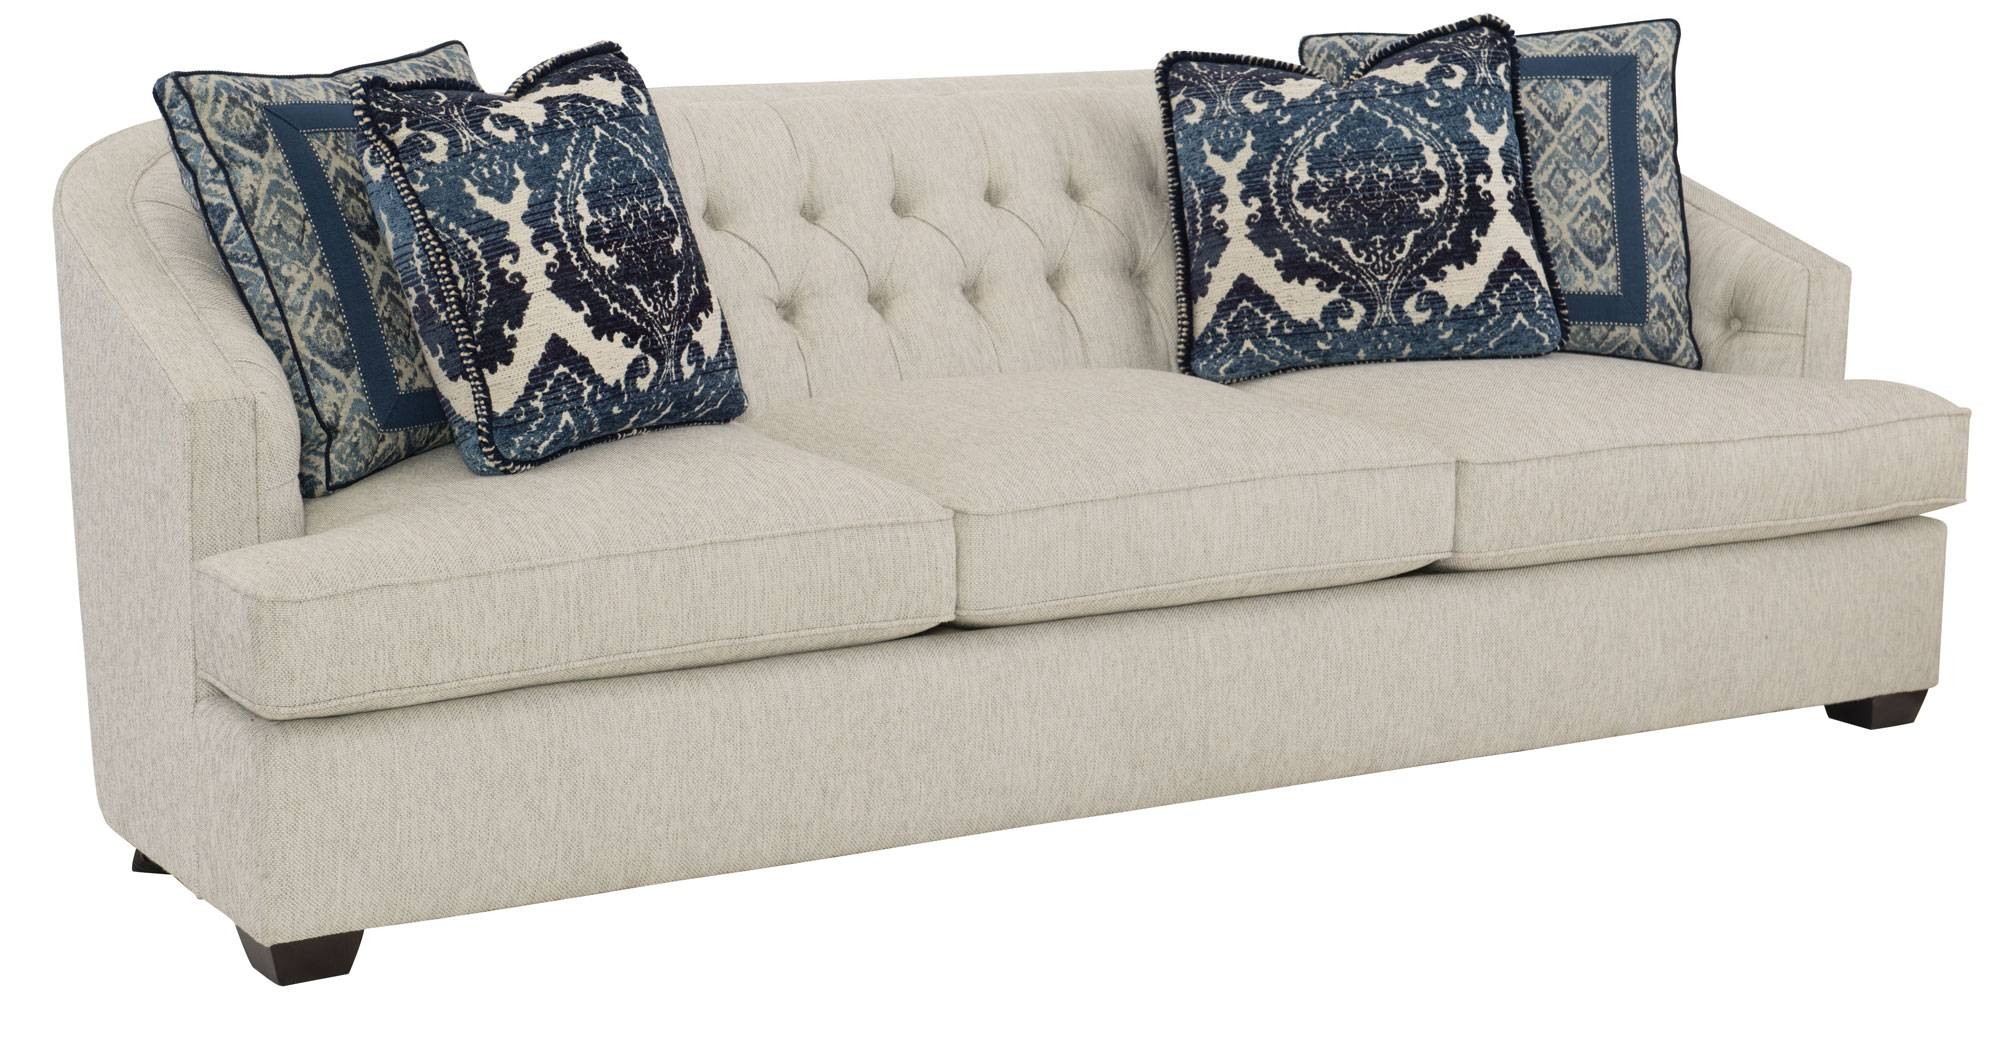 Bernhardt Cheyenne Sofa For Sale Palisades Pricebernhardt Reviews in Bernhardt Tarleton Sofas (Image 1 of 15)